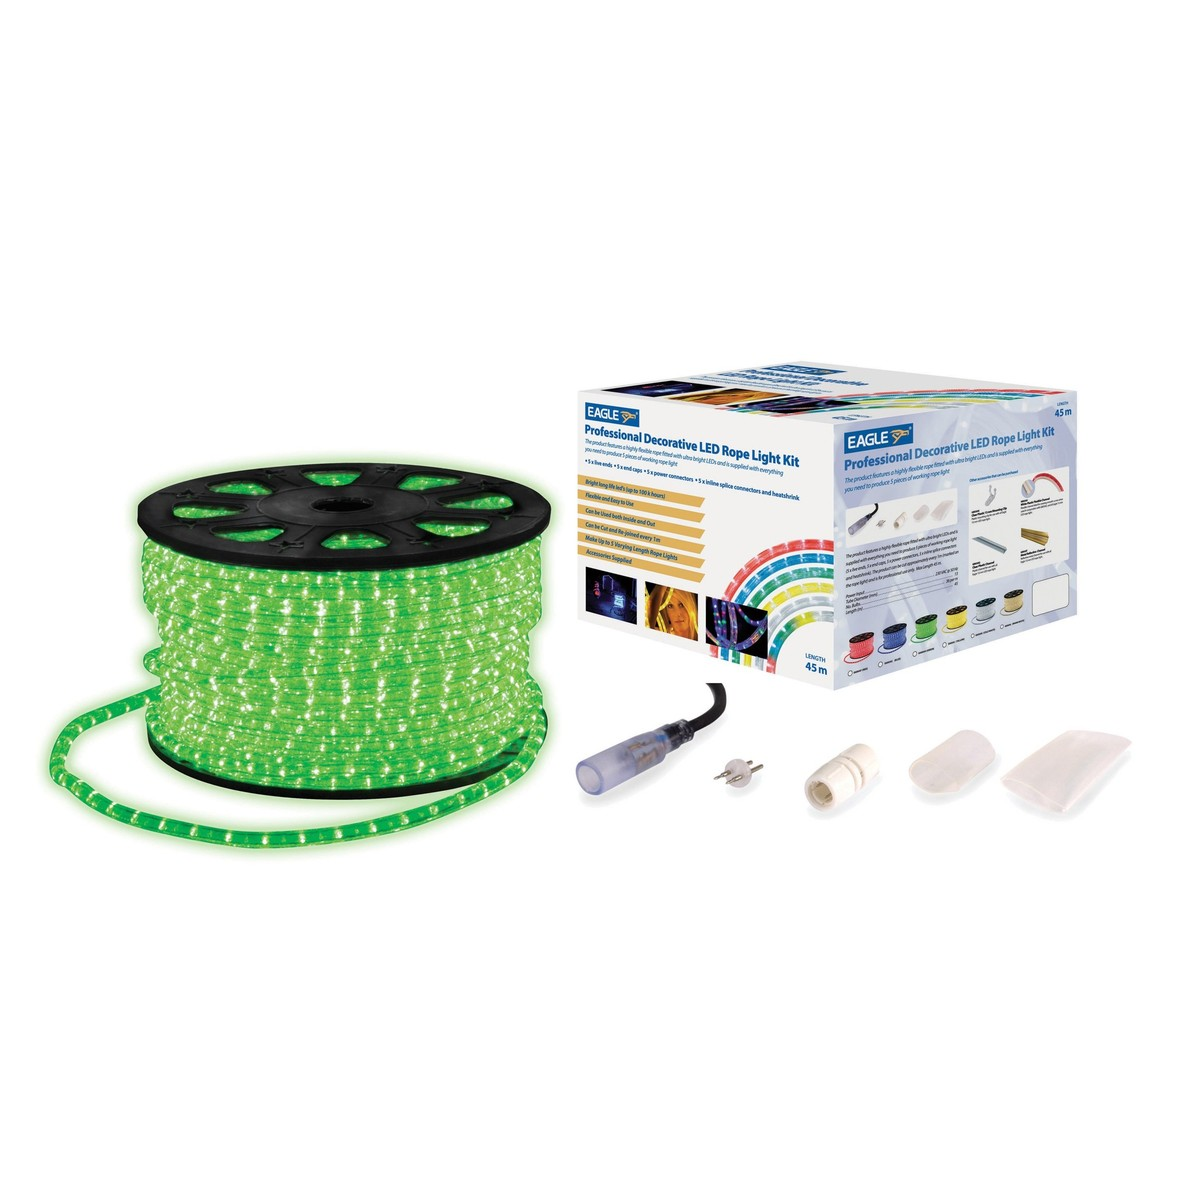 Eagle static led rope light with wiring accessories kit 45m green eagle static led rope light with wiring accessories kit 45m green mozeypictures Image collections